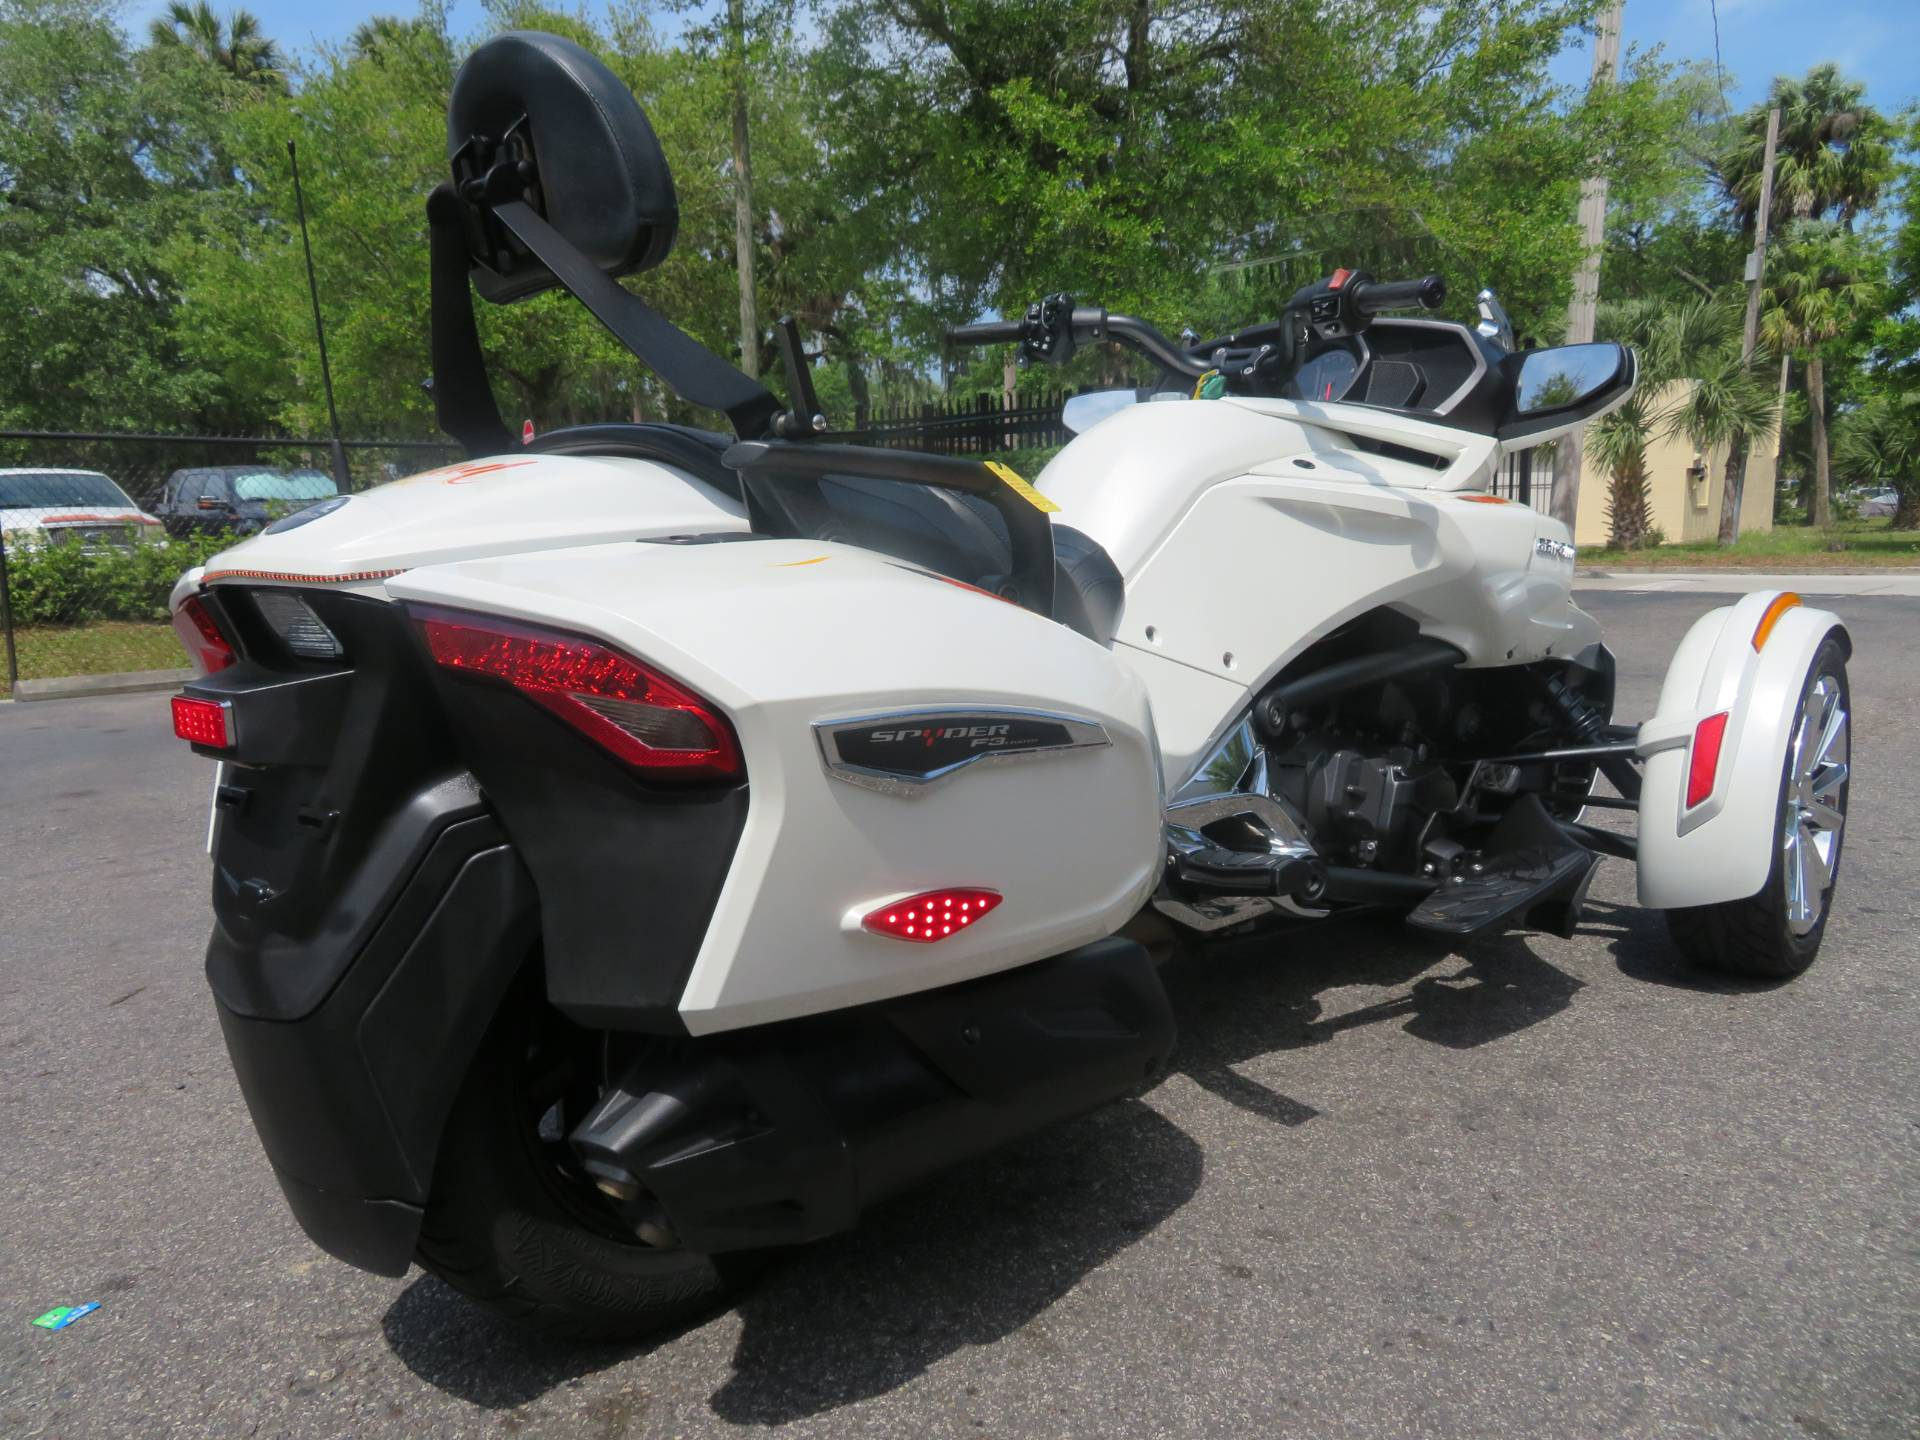 2016 Can-Am Spyder F3 Limited in Sanford, Florida - Photo 10